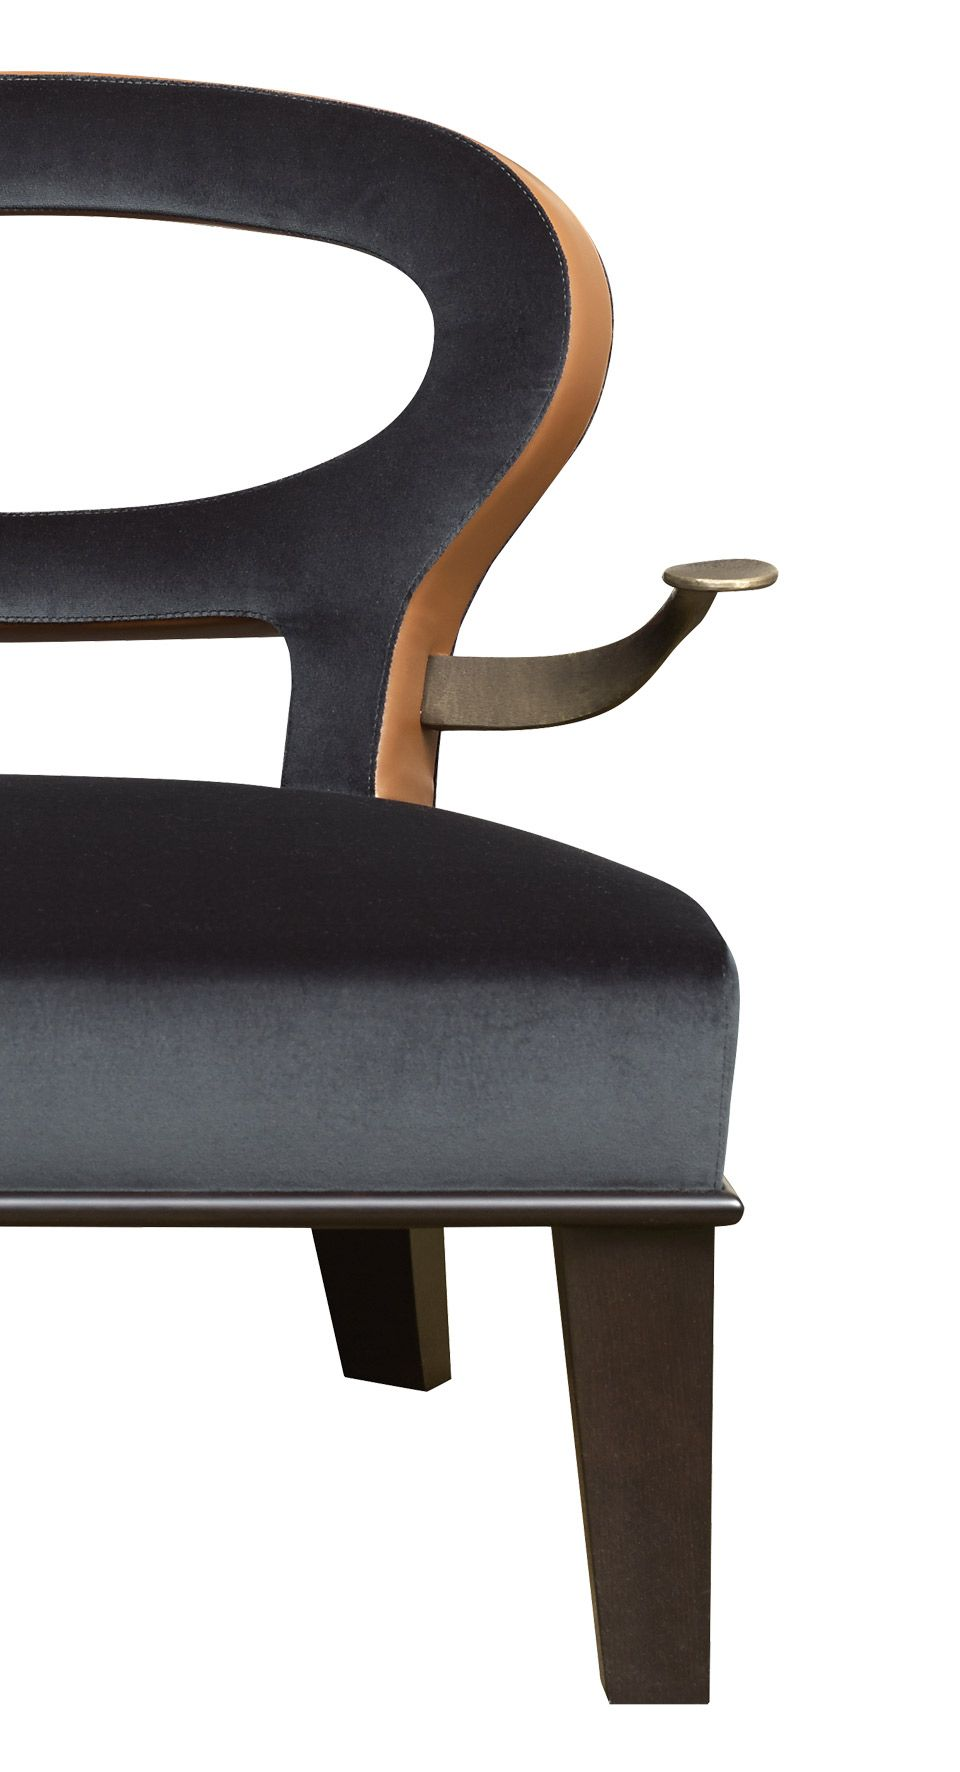 Chairs And Armchairs 2020 Large Armchair Chair Armchair